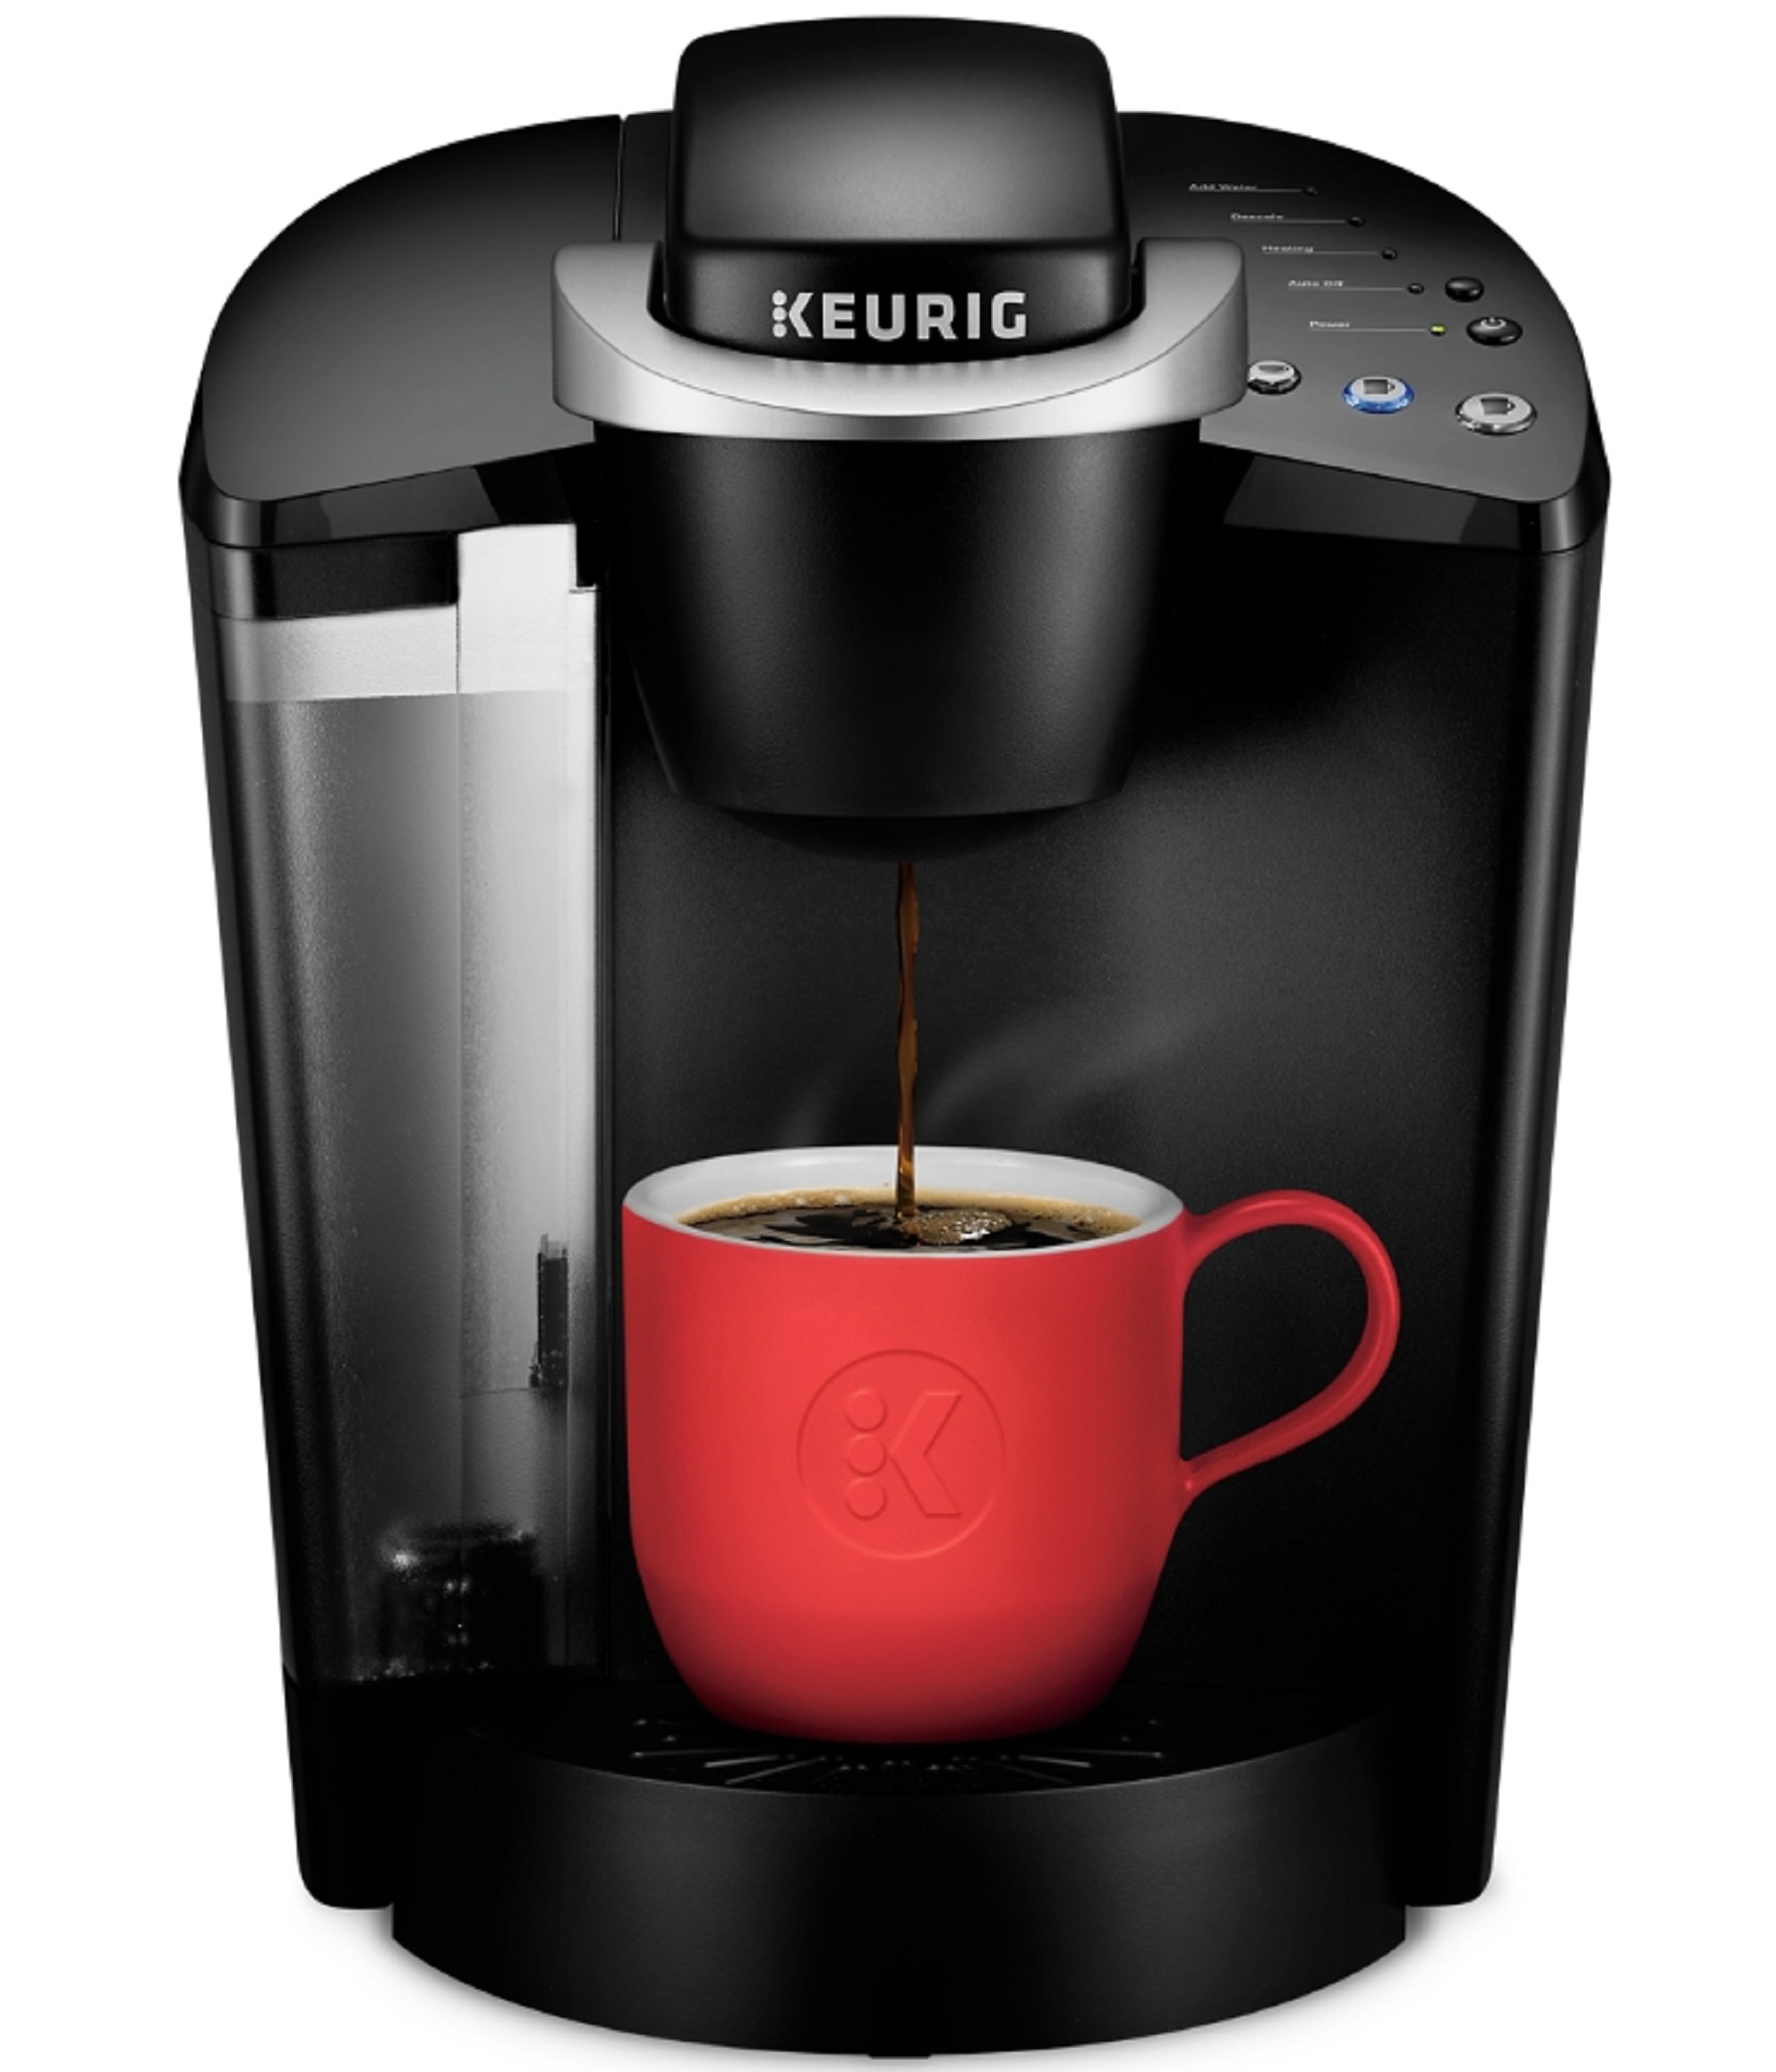 Keurig K-Classic Single Serve, K-Cup Pod Coffee Maker, Black